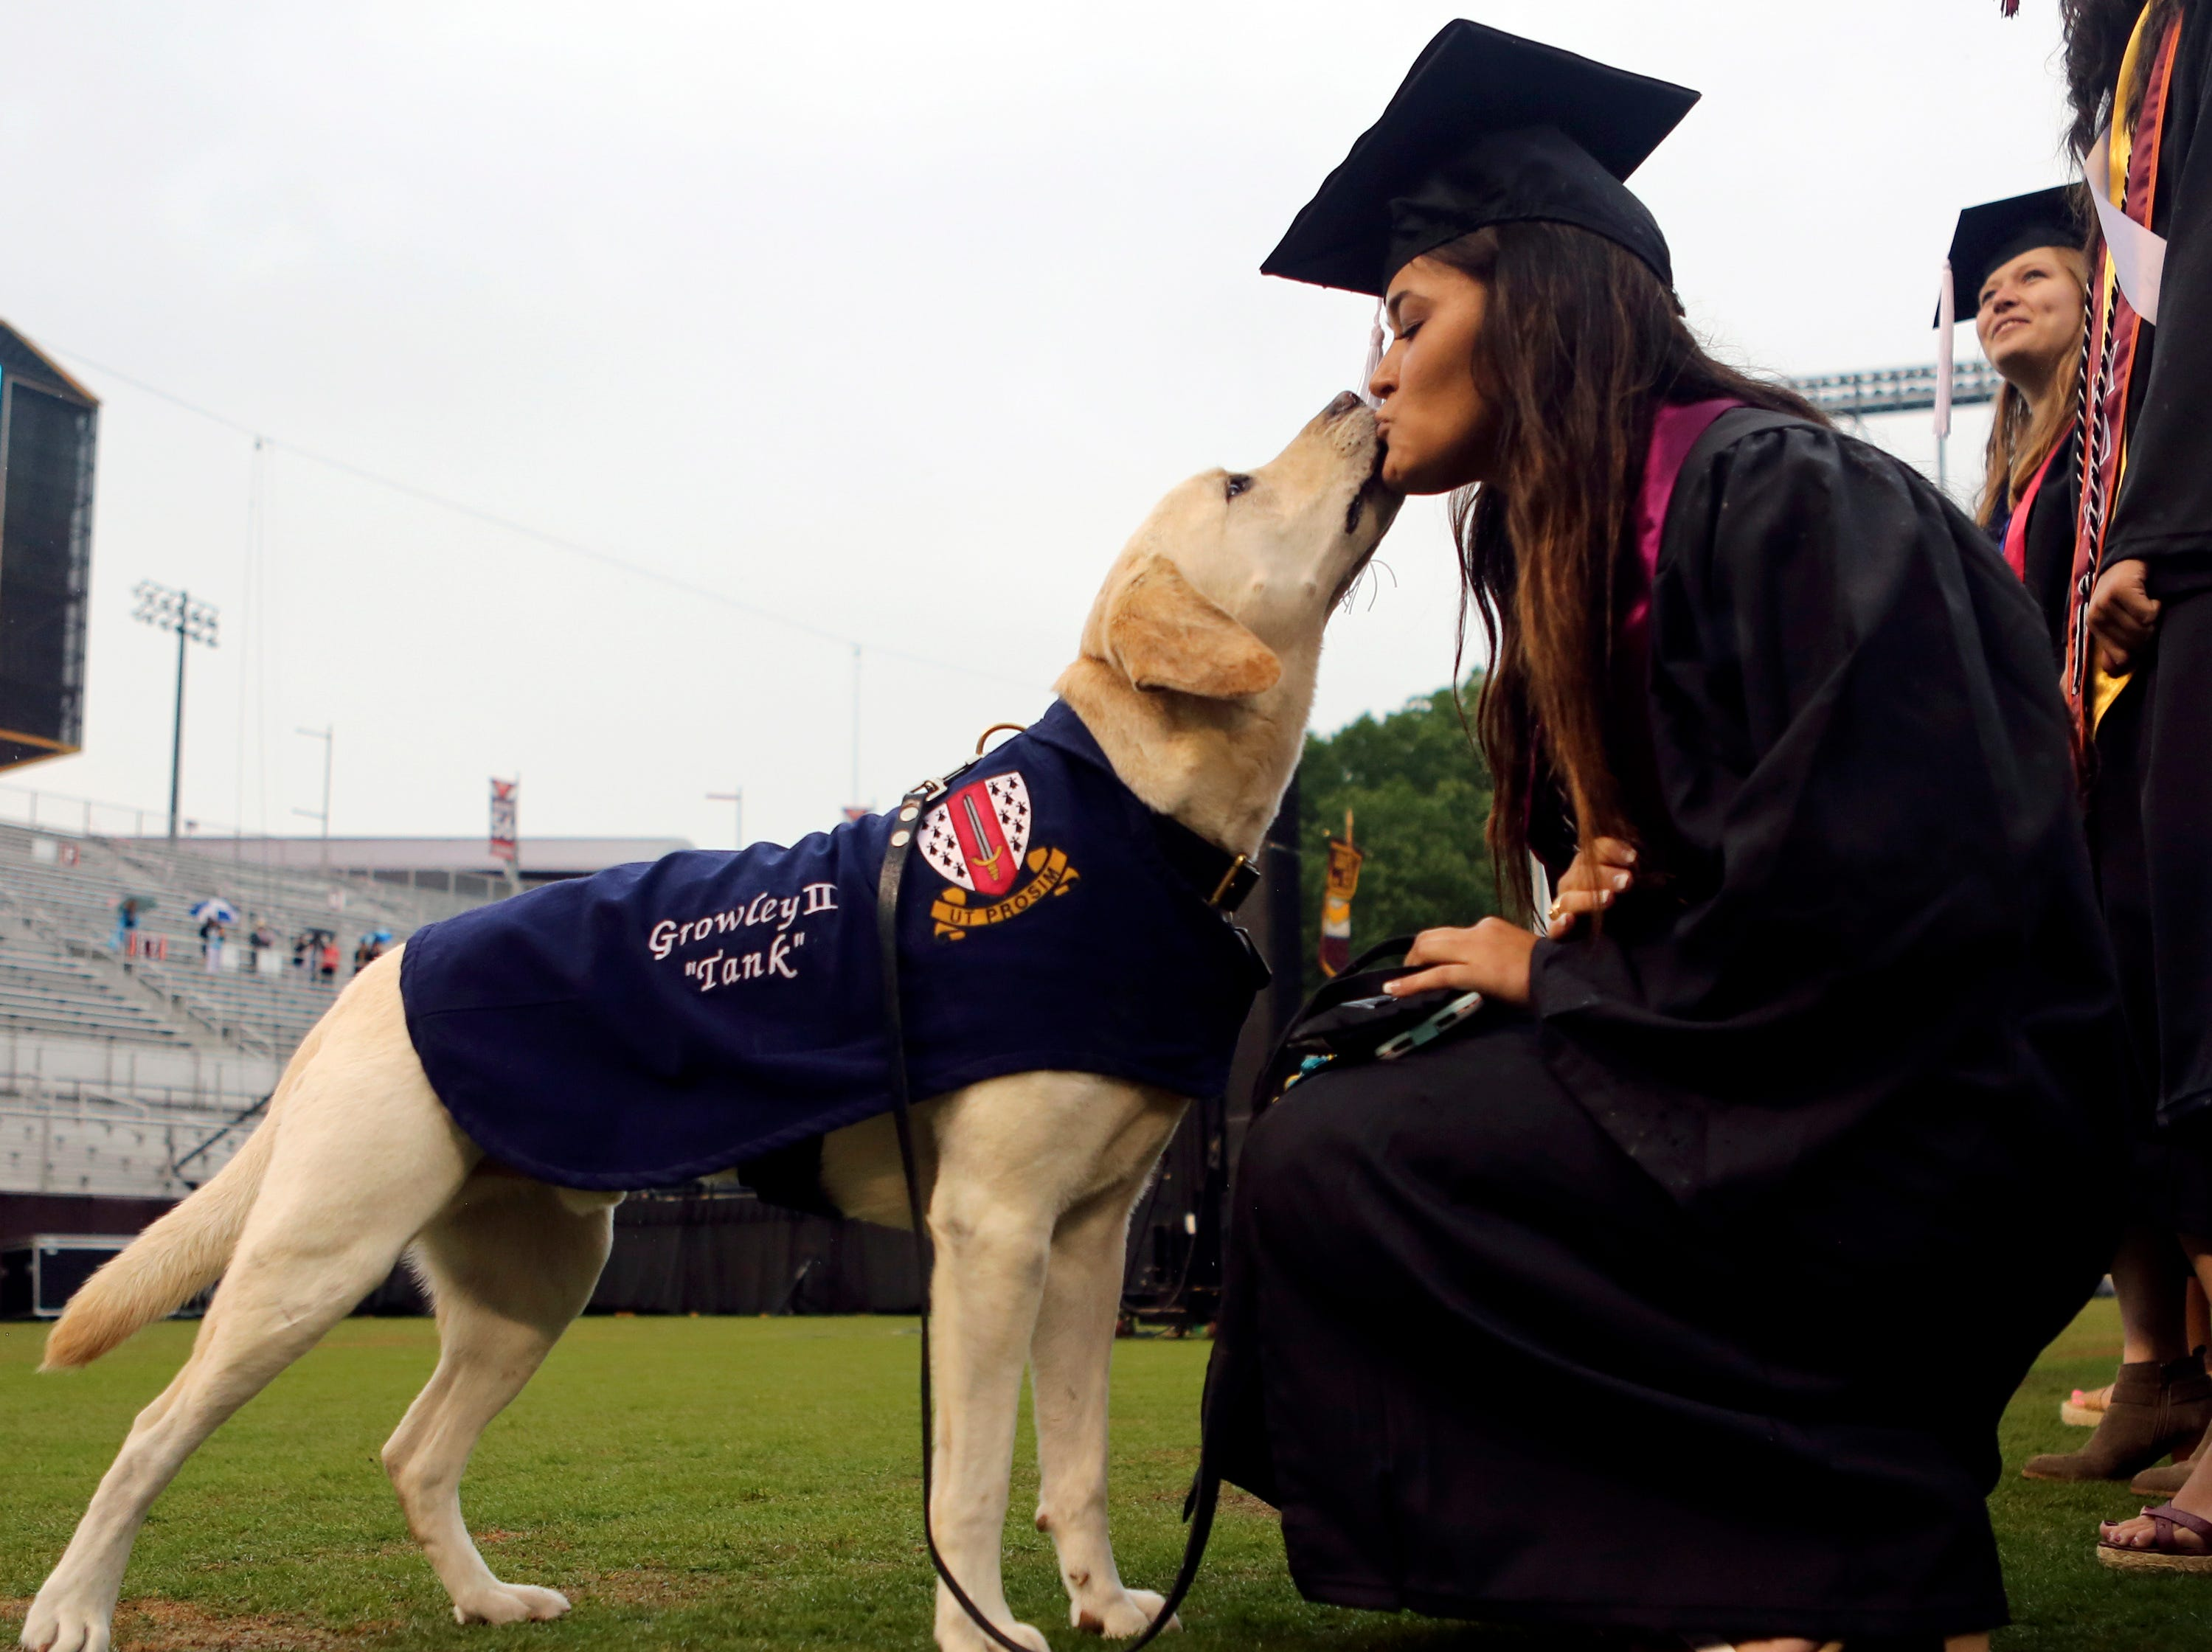 Graduate Eleanor Franc gets a kiss from Virginia Tech Corps of Cadets ambassador Growley II at the start of graduation in Blacksburg, Va. Friday May 17, 2019. Franc is one of a team of handlers for Growley II who will stay on campus with the corps.